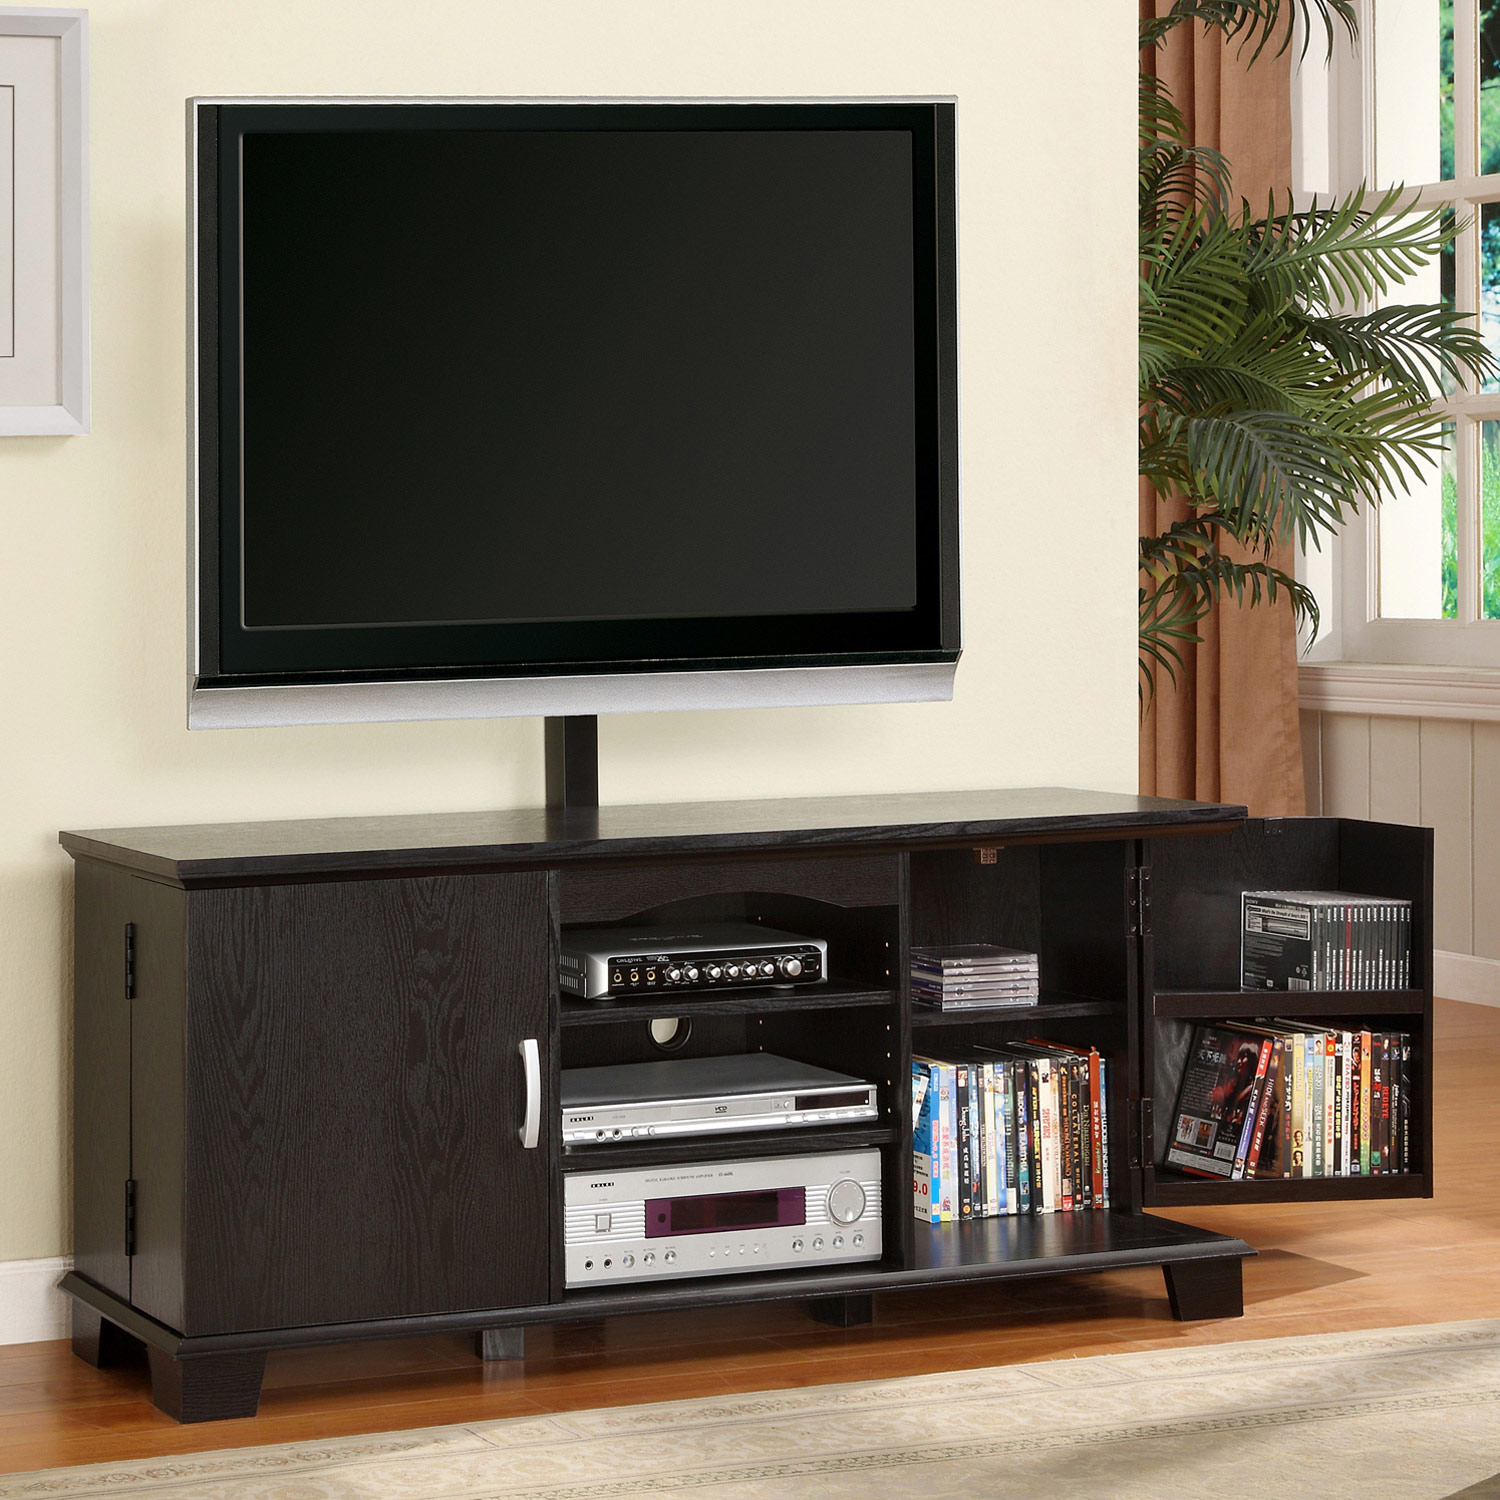 60 39 39 wood tv console with mount and storage black dcg for Tv console with storage